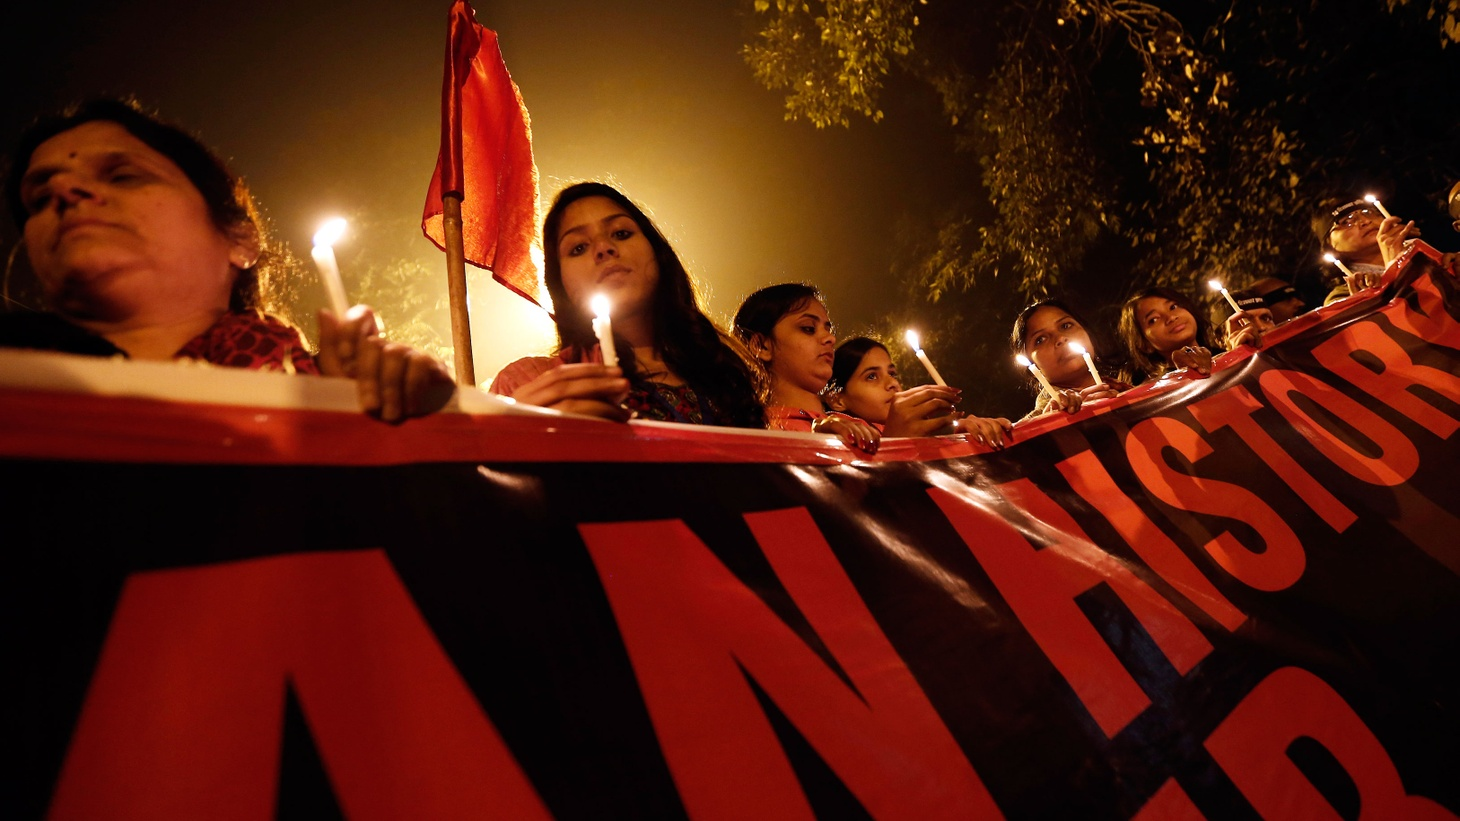 Is sexual violence in India and Pakistan on the increase or just getting more attention? Will an international spotlight bring much-needed change?